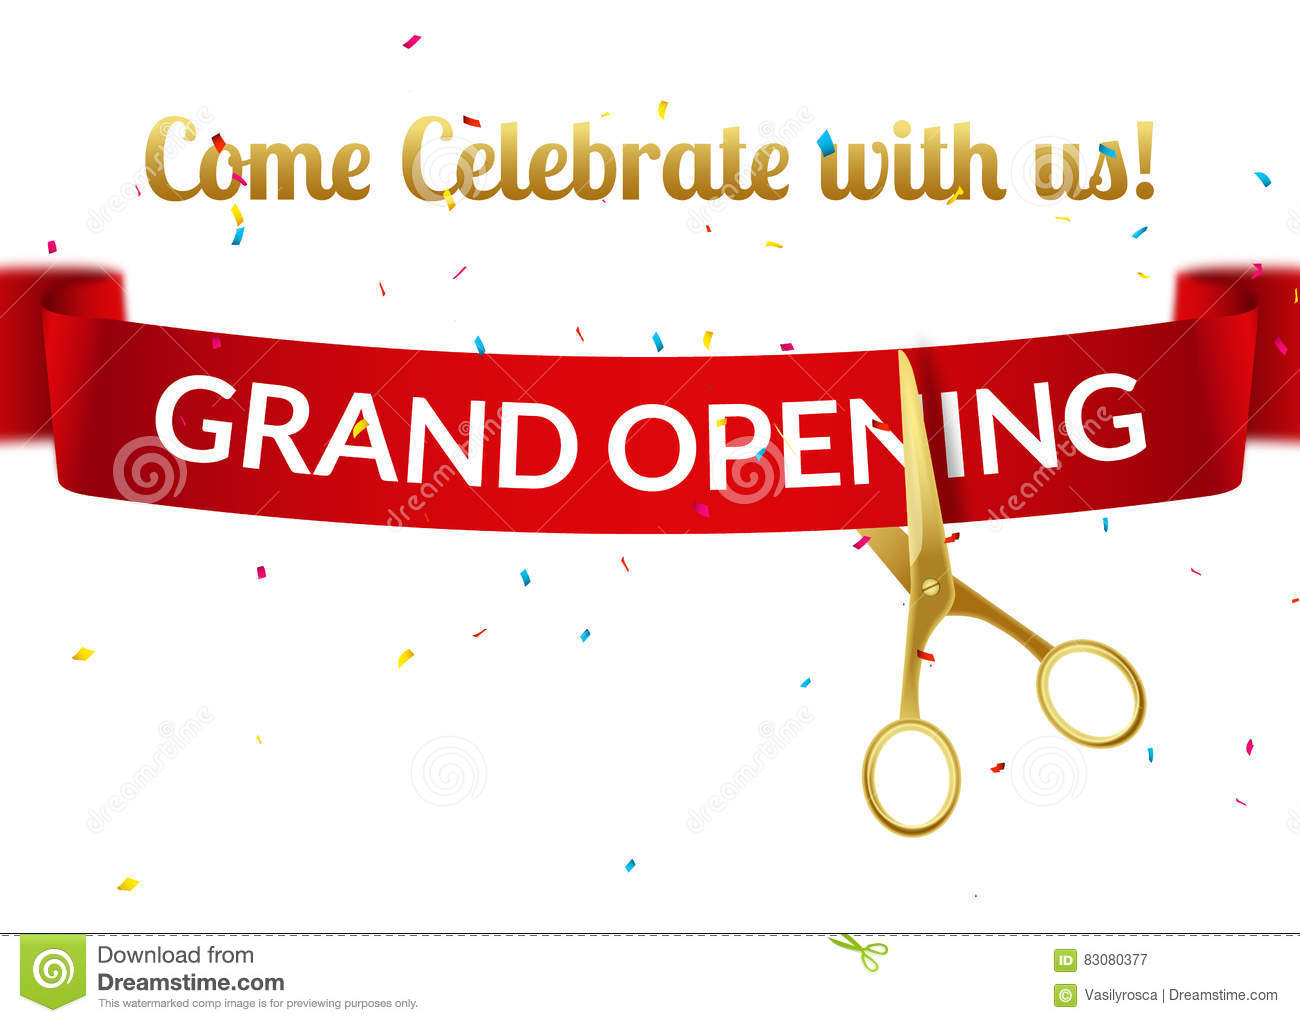 grand opening invitation template free - Kubre.euforic.co